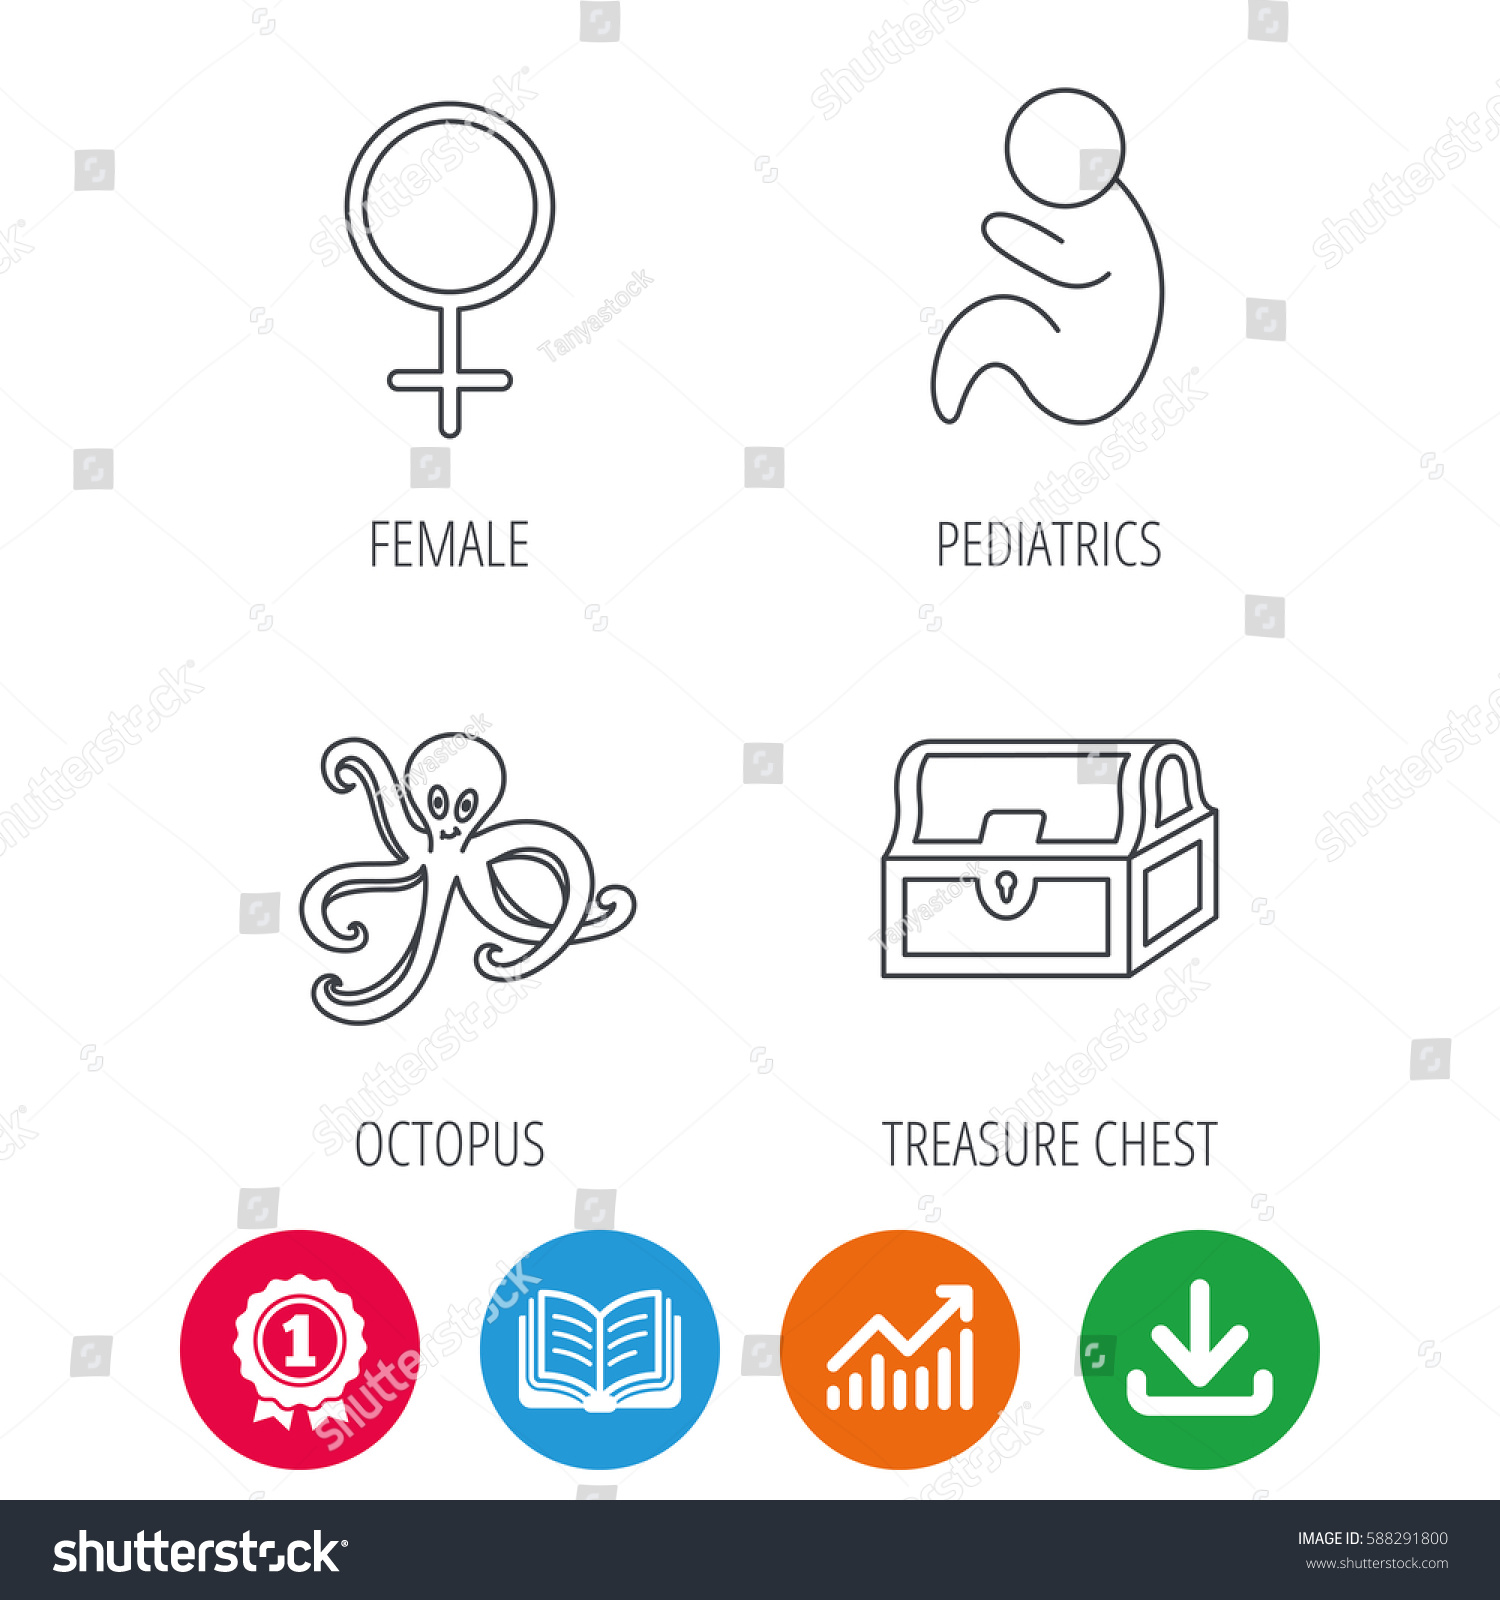 Female pediatric growth chart choice image free any chart examples female treasure chest pediatrics icons octopus stock vector female treasure chest pediatrics icons octopus stock vector nvjuhfo Gallery